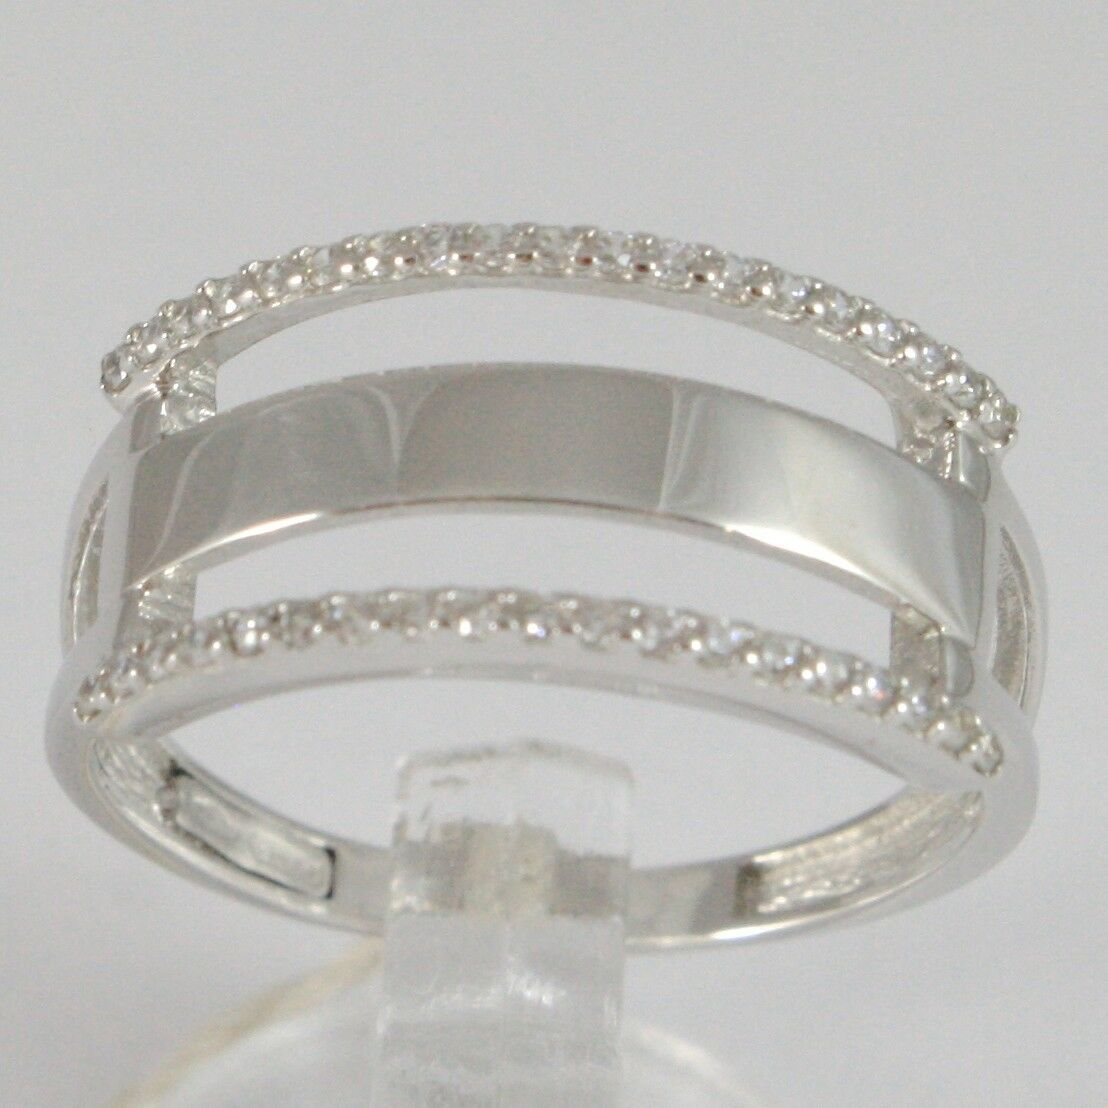 Ring White Gold 750 18K, engaged 3 file with Zirconia Cubic Square